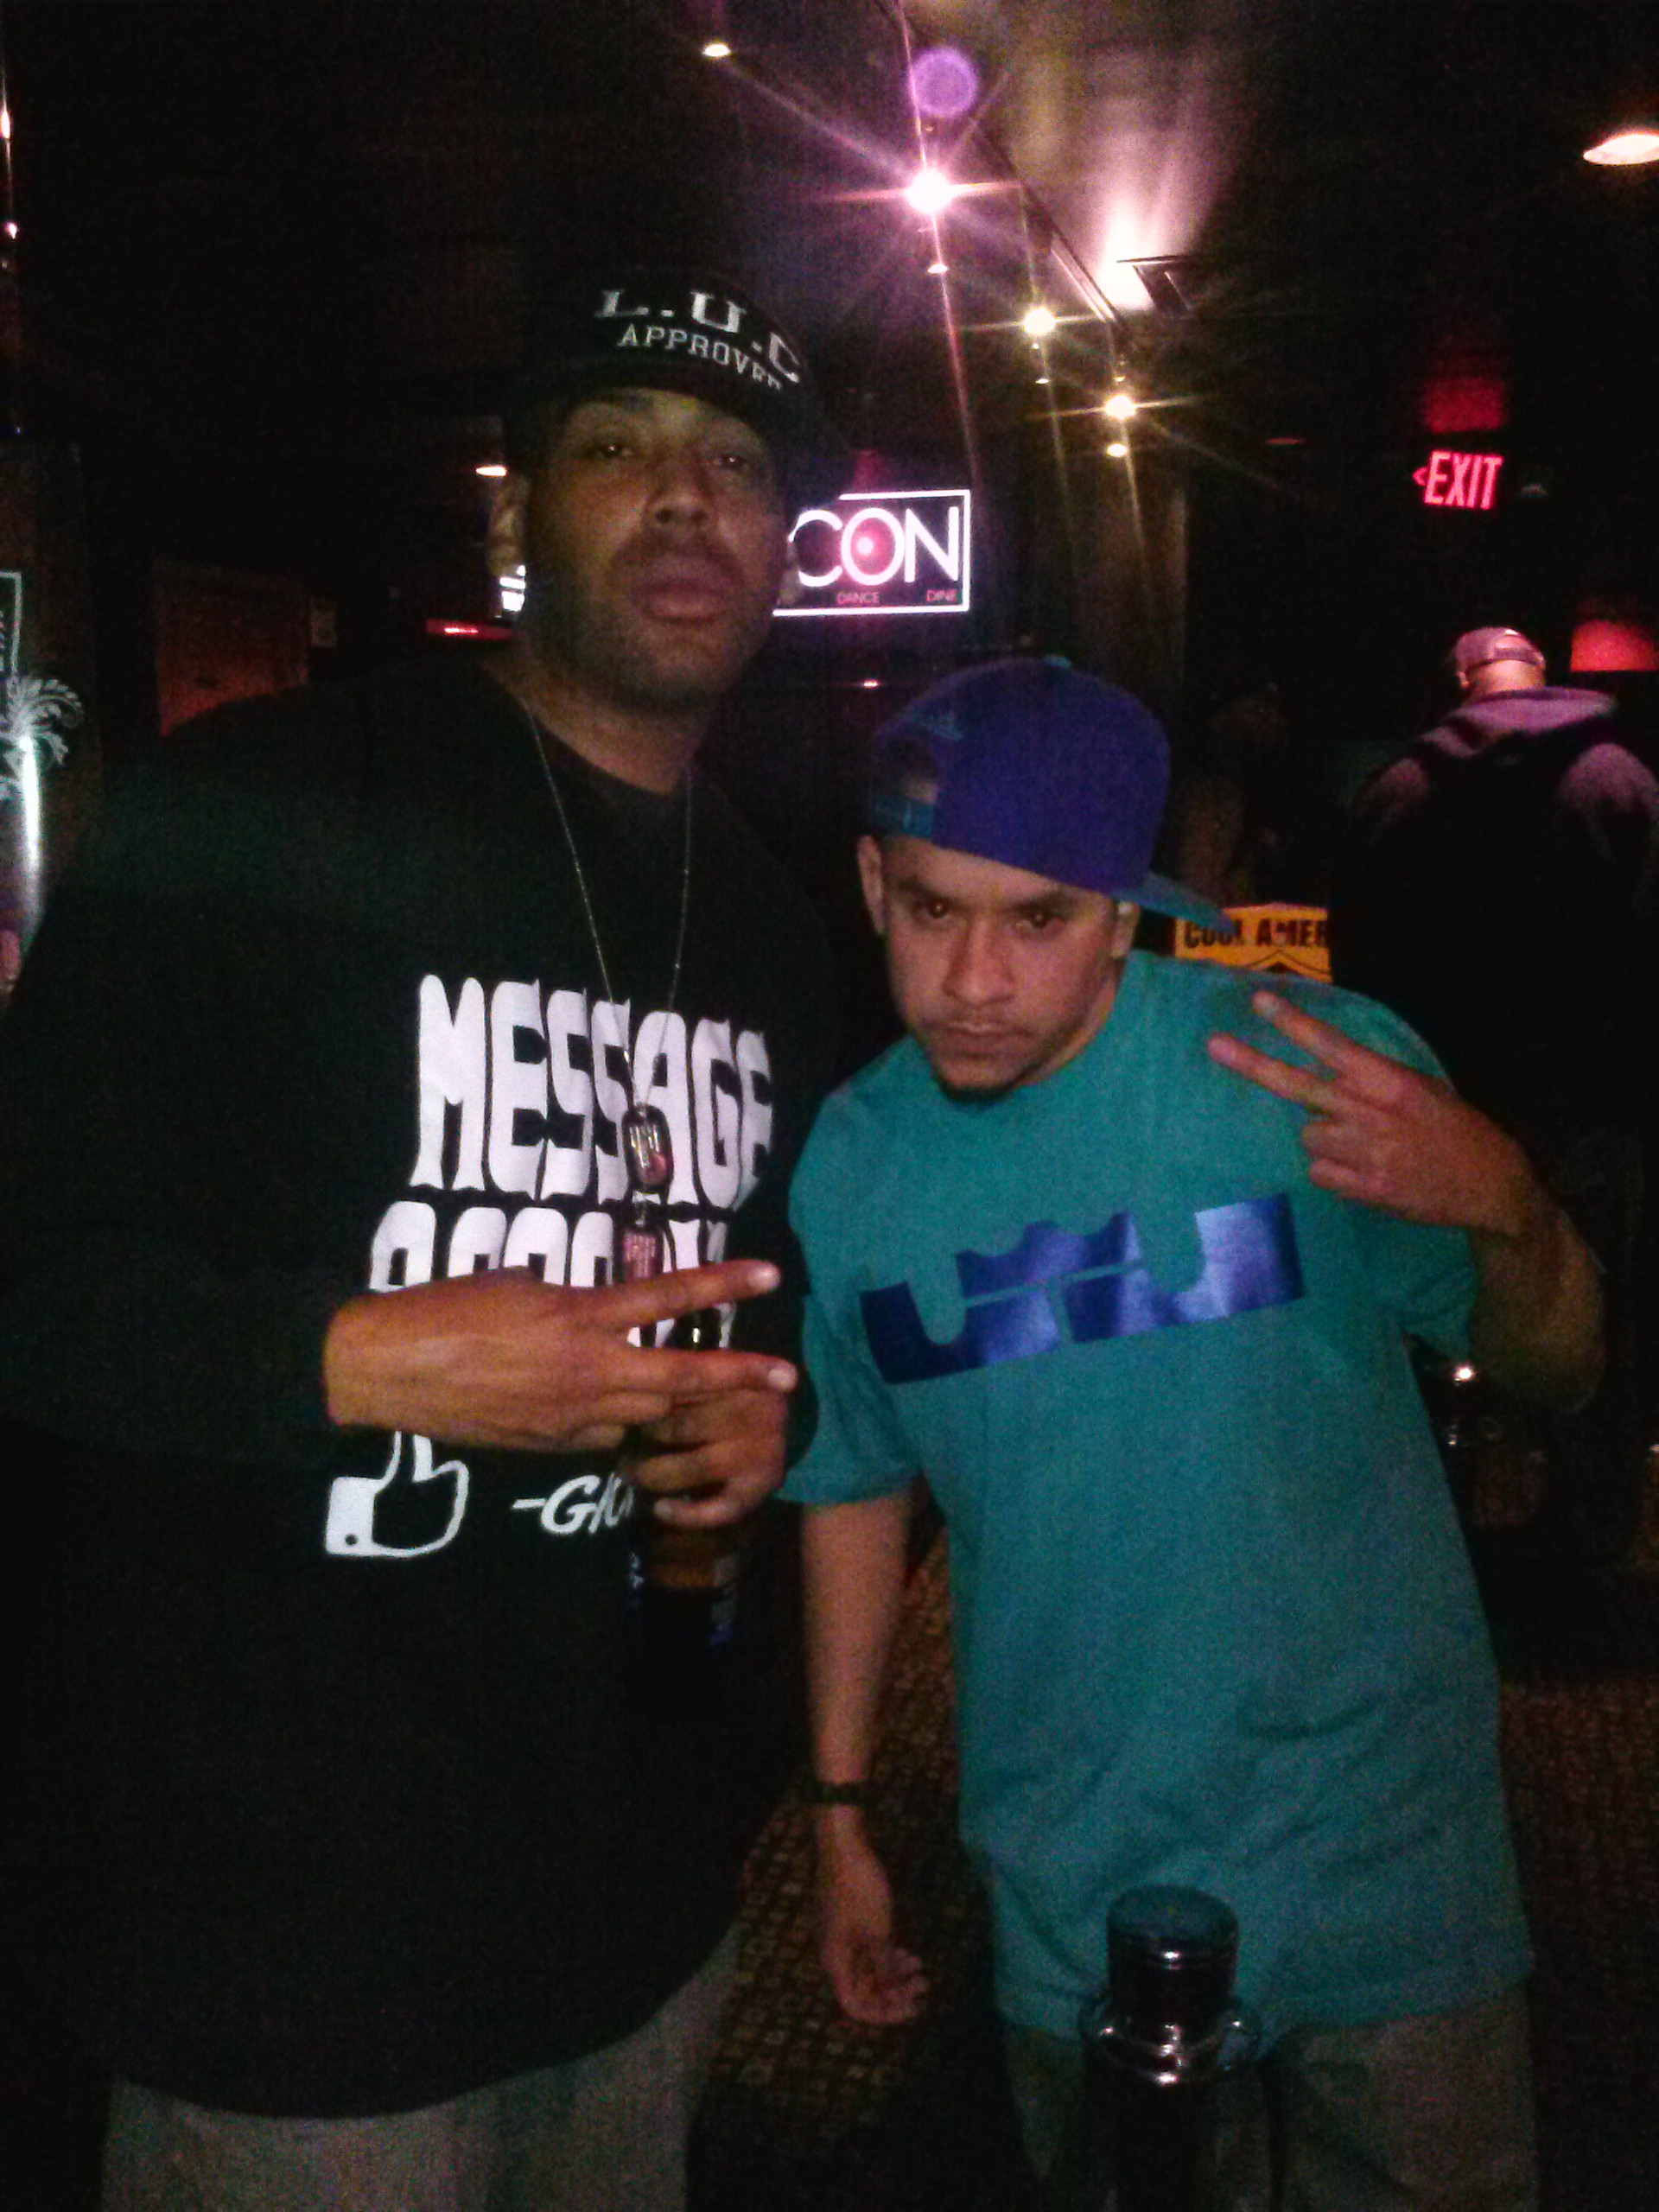 Giovanni and Definition DJ Scrappy